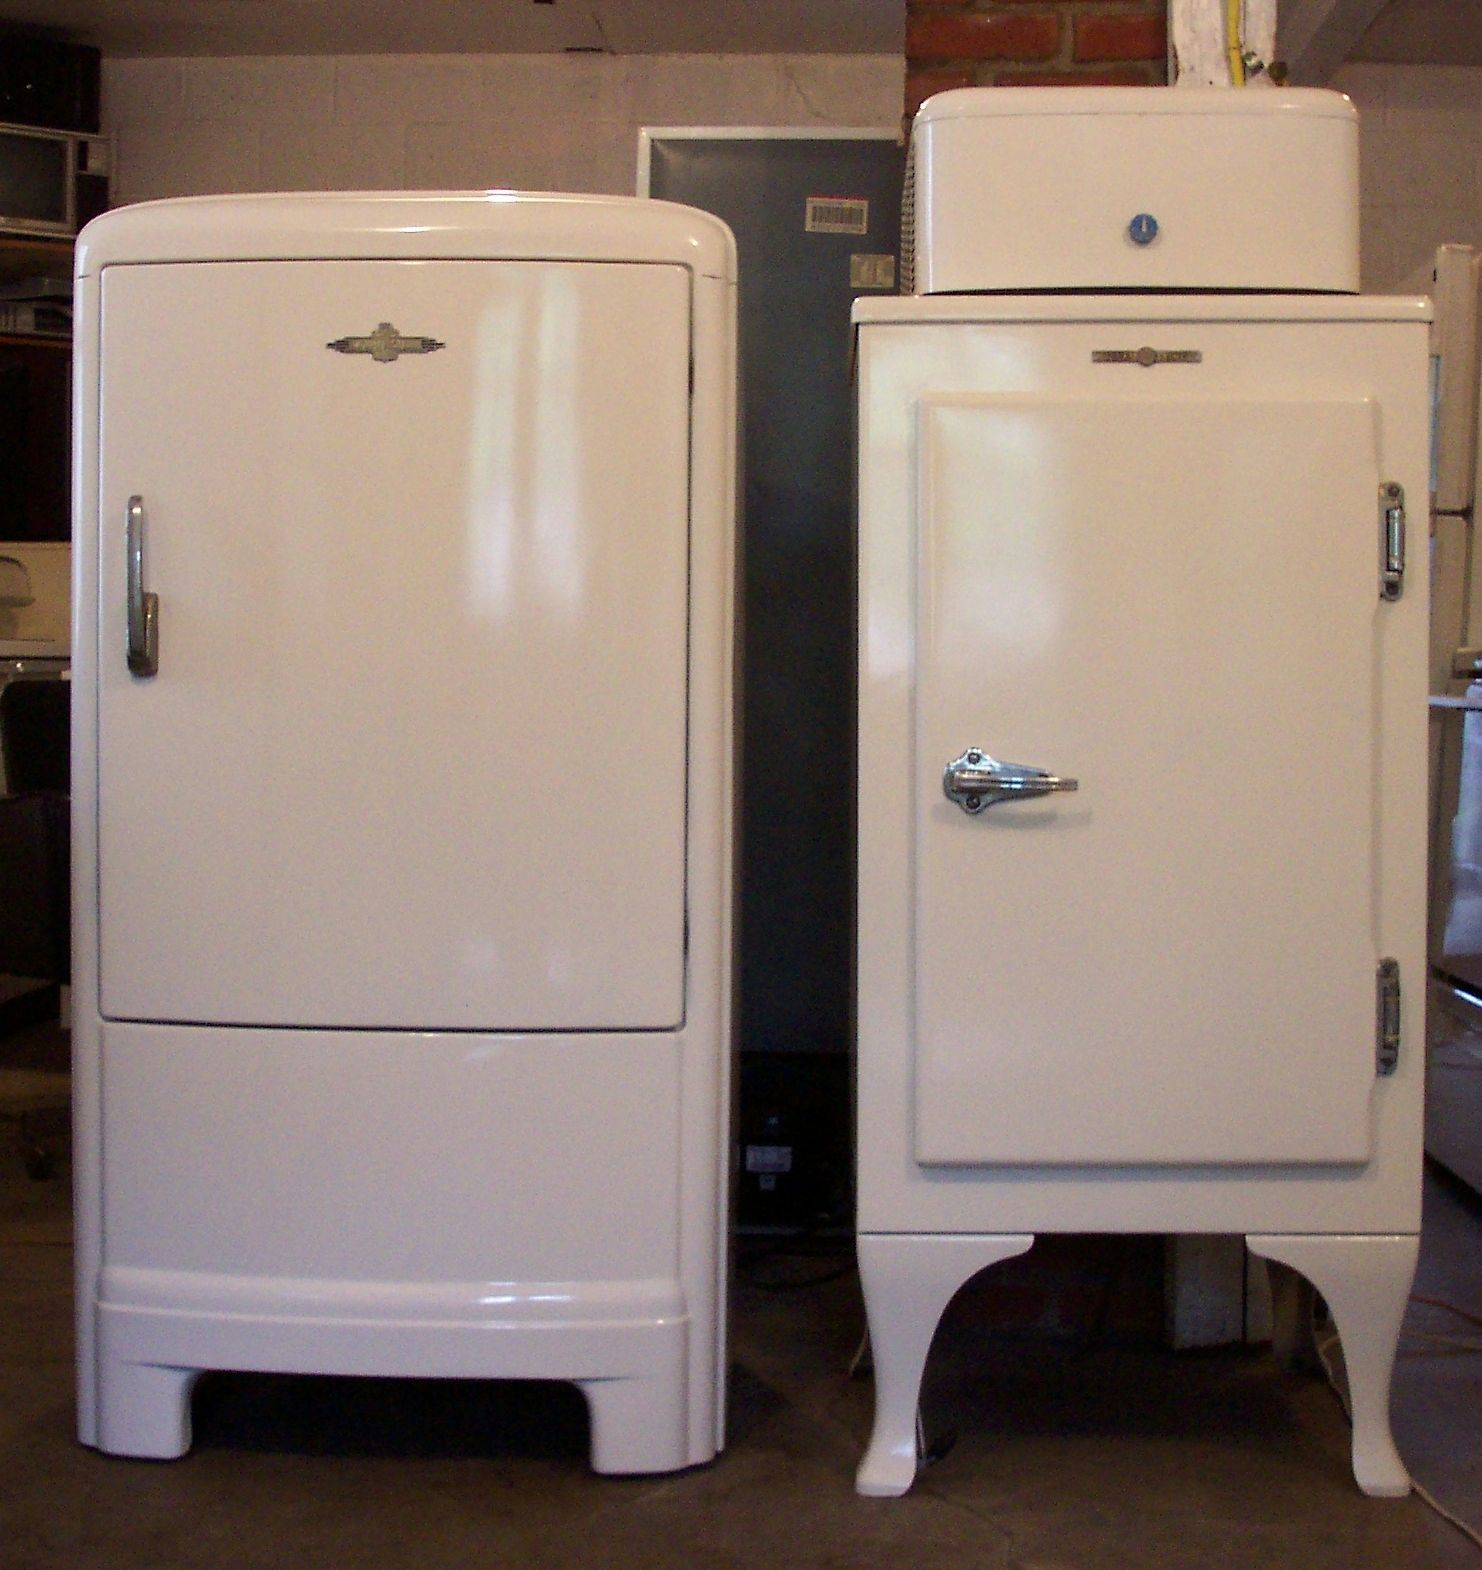 Vintage Fridge: 1930s Fridge Aircon Inc Refrigeration In 2019